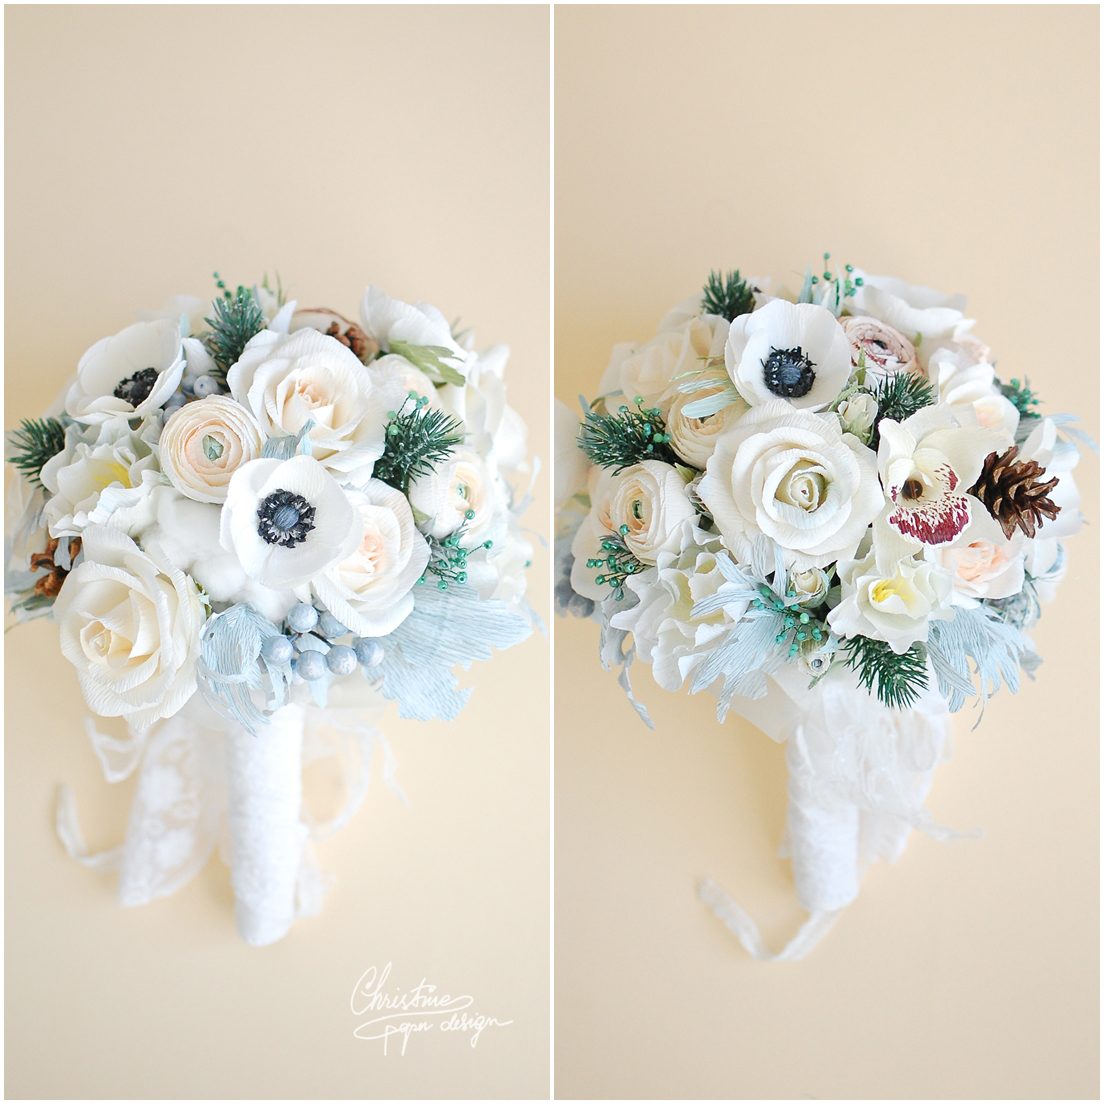 Winter Theme Paper Flowers Bridal Bouquet Christine Paper Design